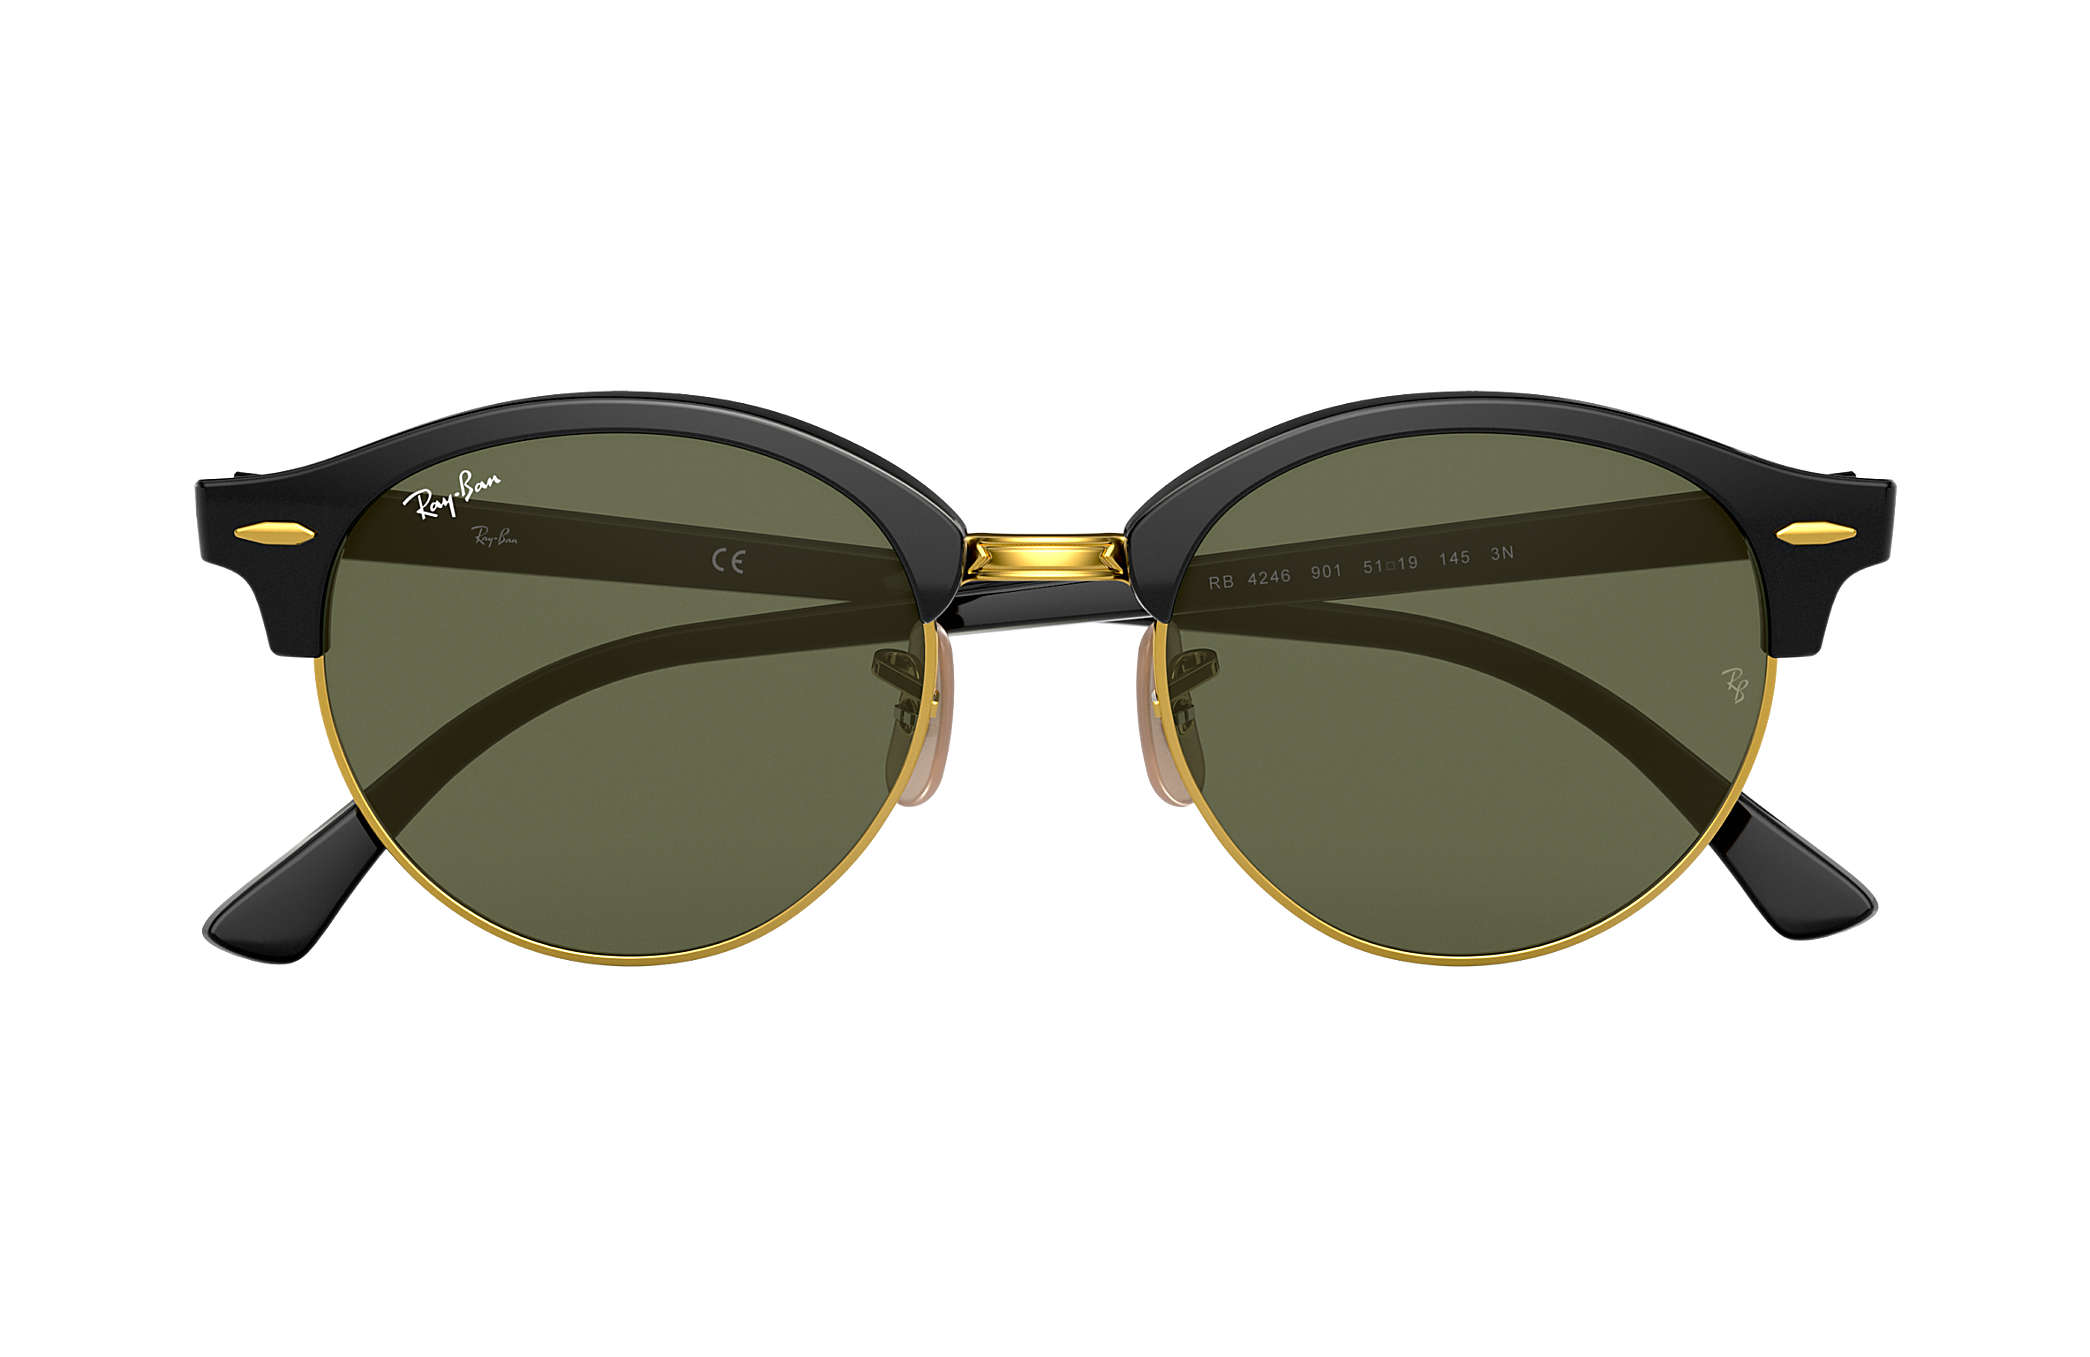 19f982926 Ray-Ban Clubround Classic RB4246 Black - Acetate - Green Lenses ...